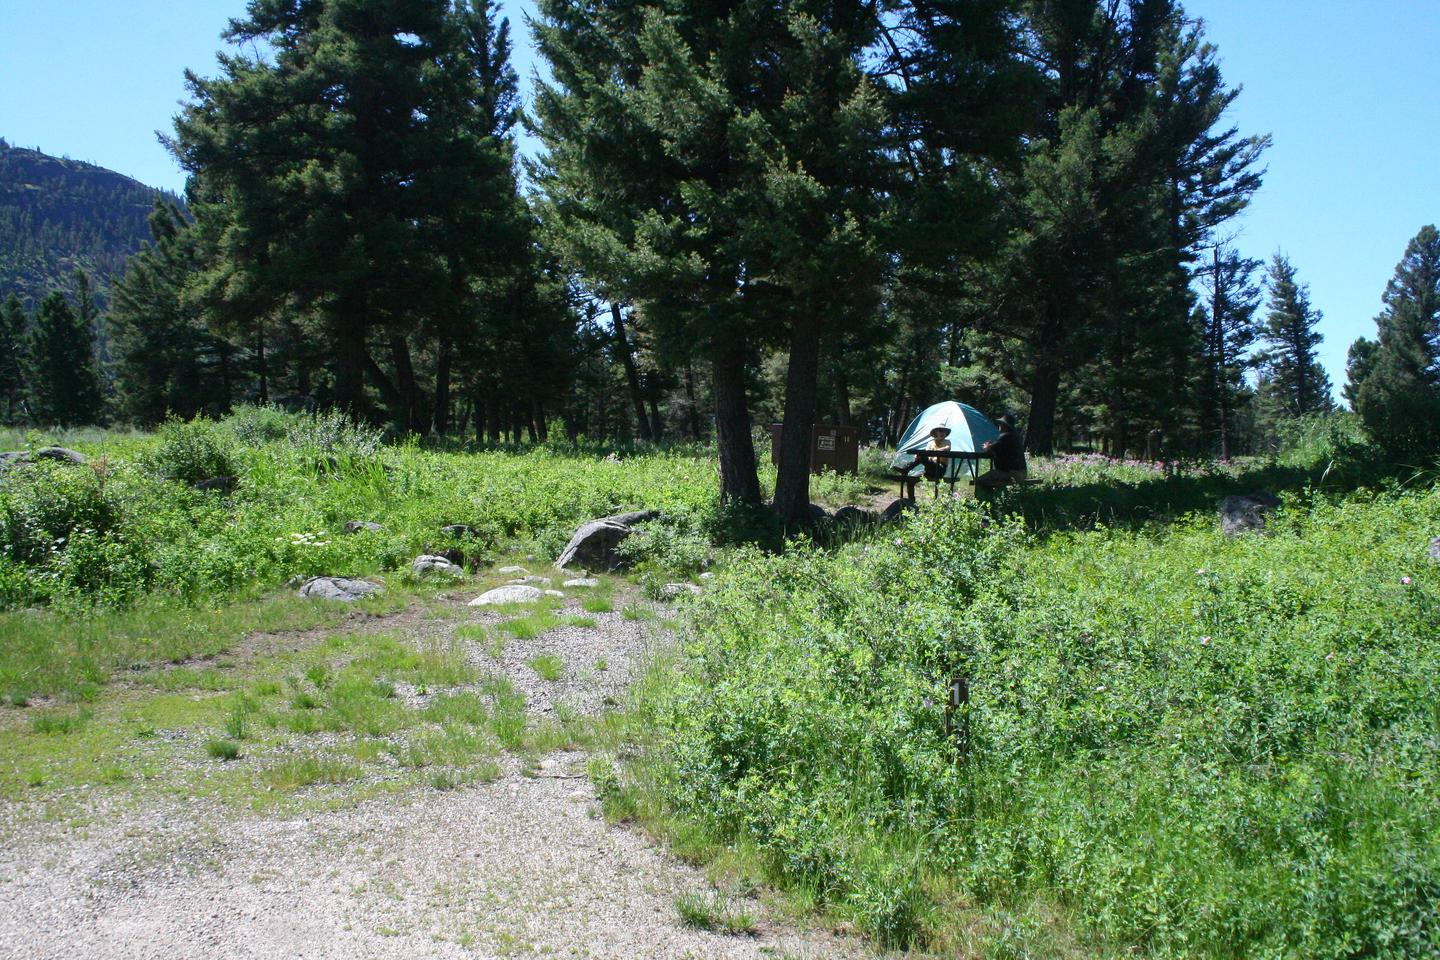 Slough Creek Campground site #14.Slough Creek Campground site #14